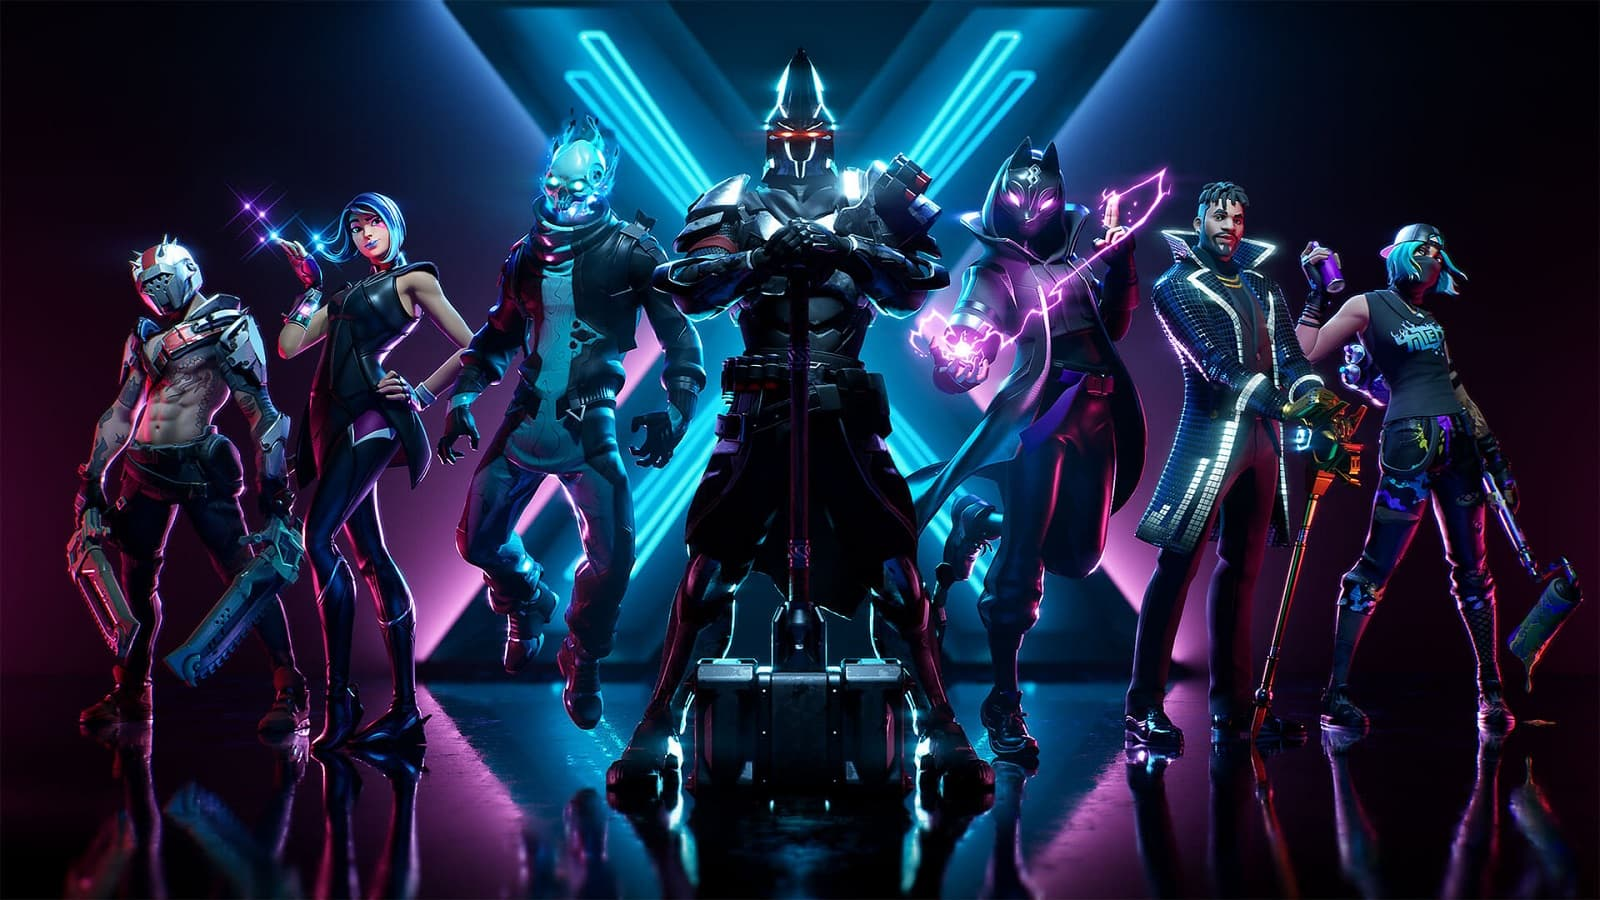 Fortnite Season X is here and everything old (might) be new again